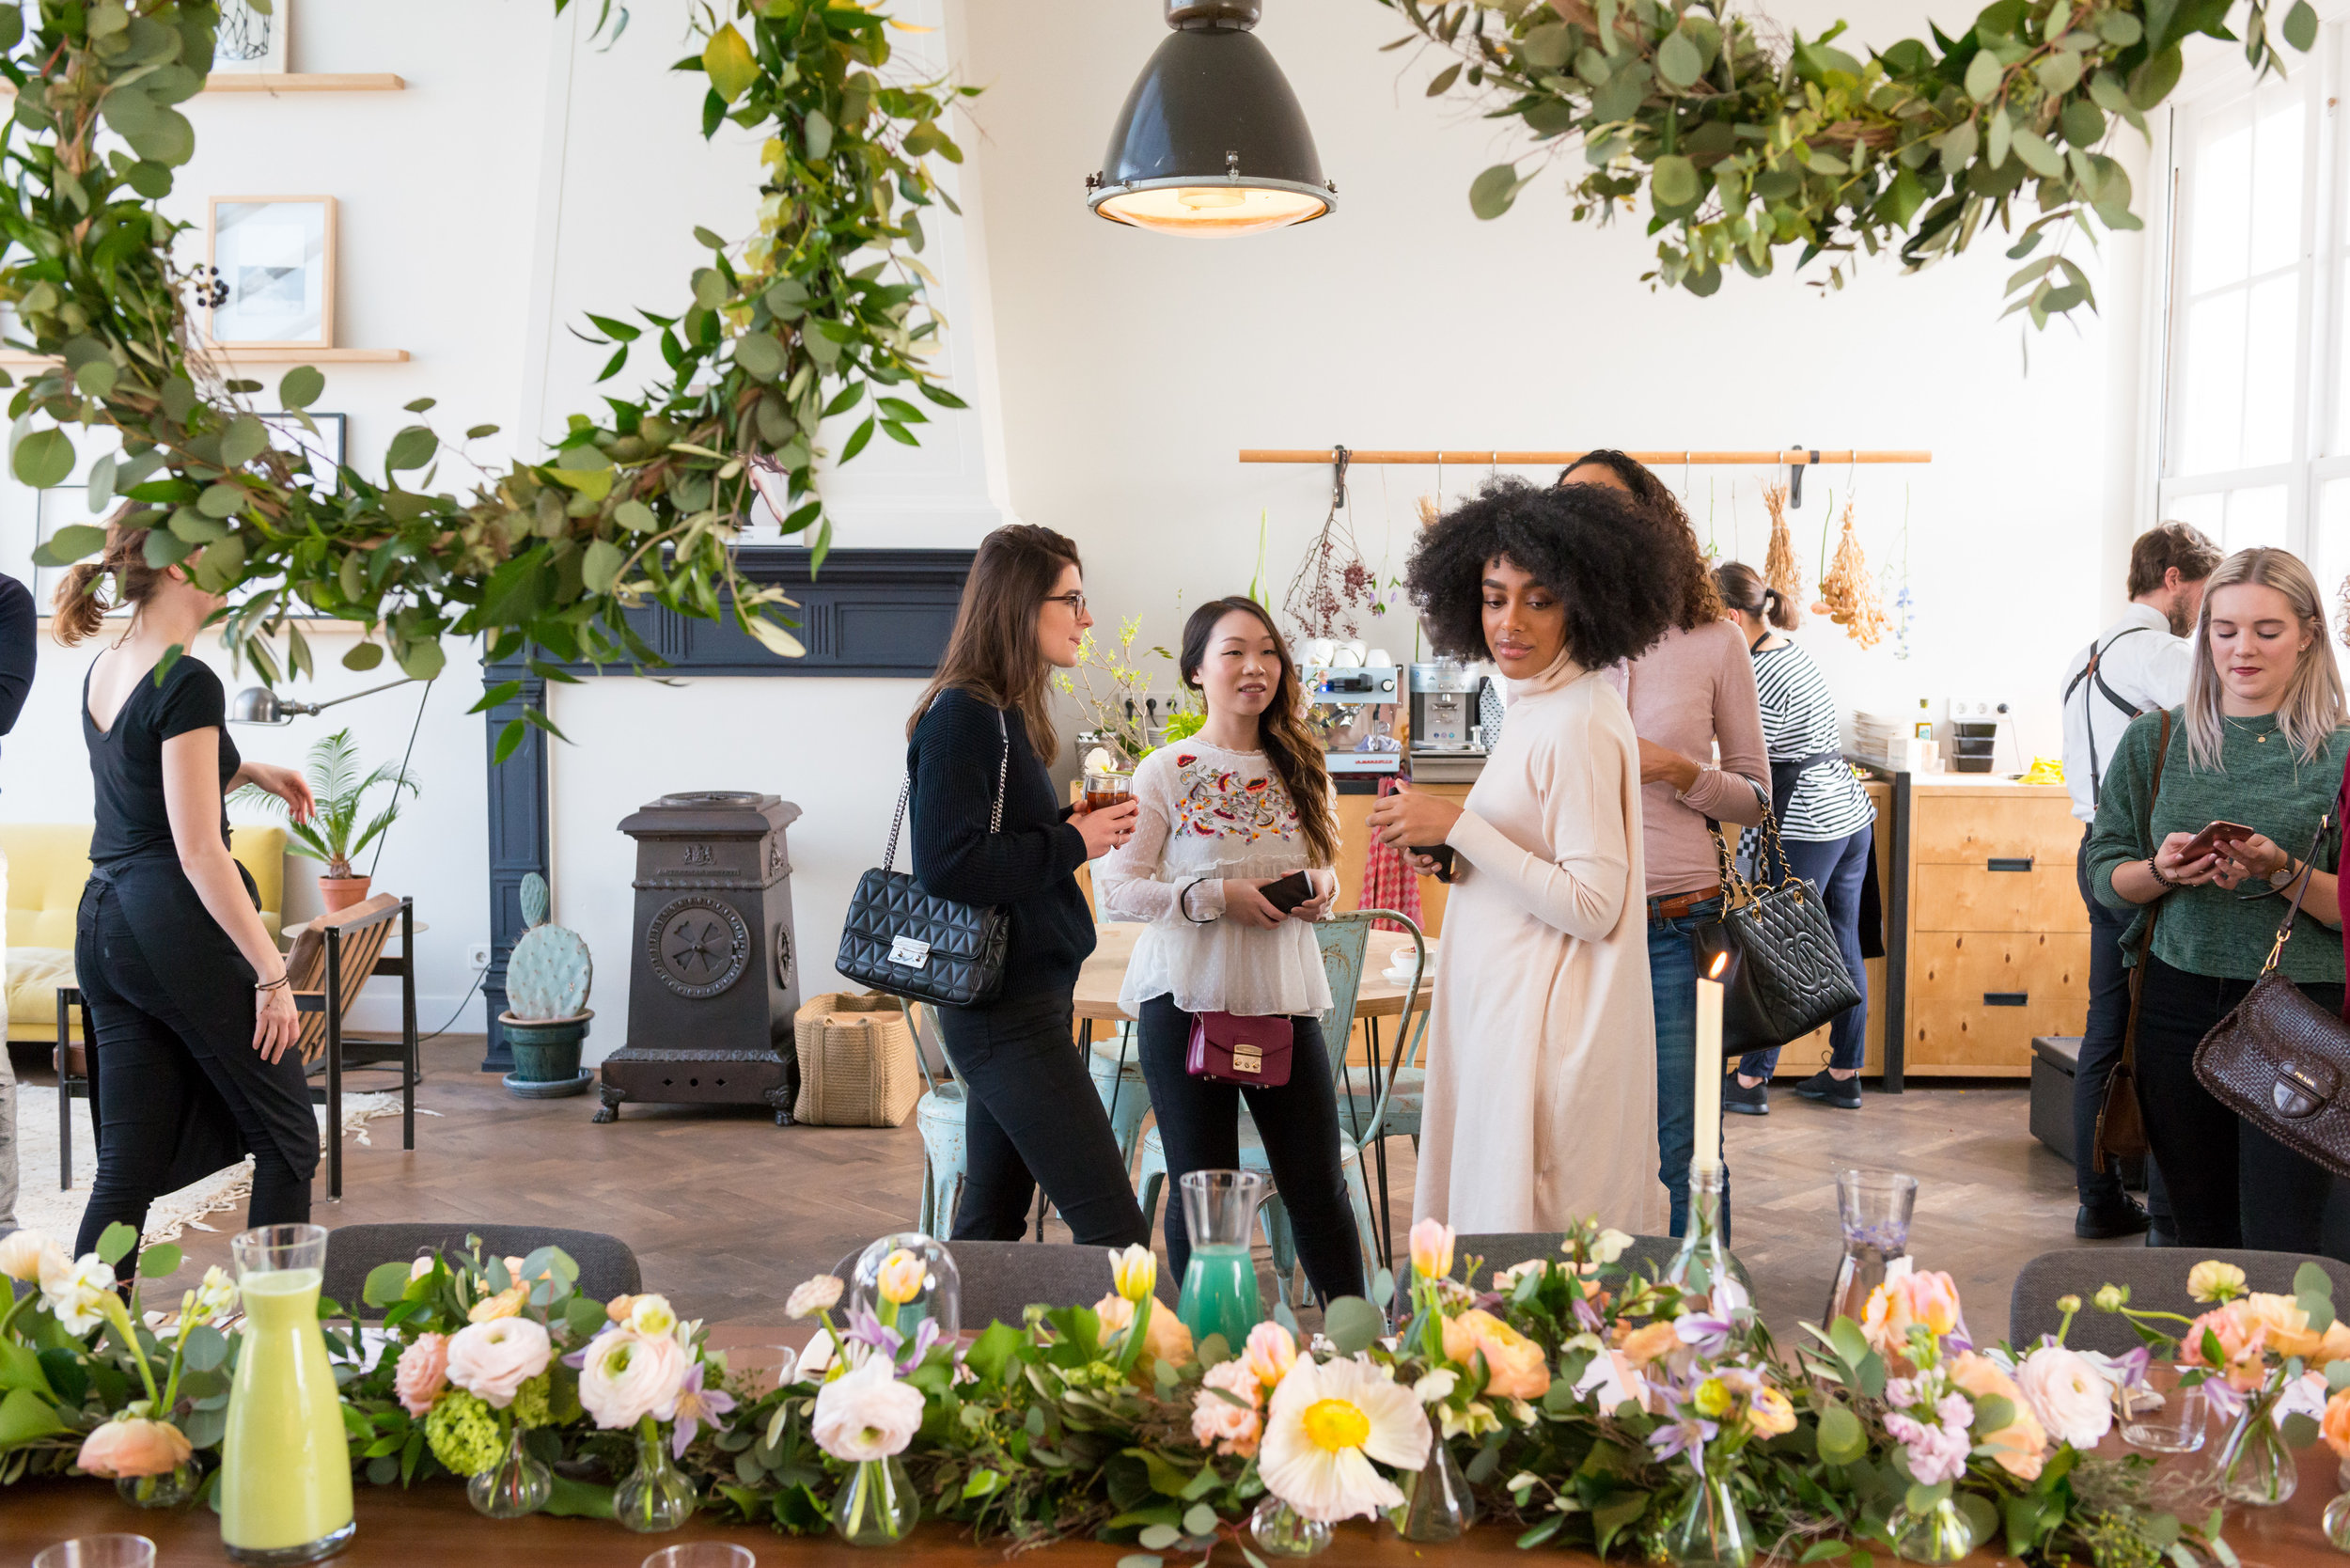 A.P Bloem bloemist bloemen flowers botanical florist event evenement beauty bohemian styling wreaths garland guirlande krans haircare Maria Nila the playing circle Mooi The Agency